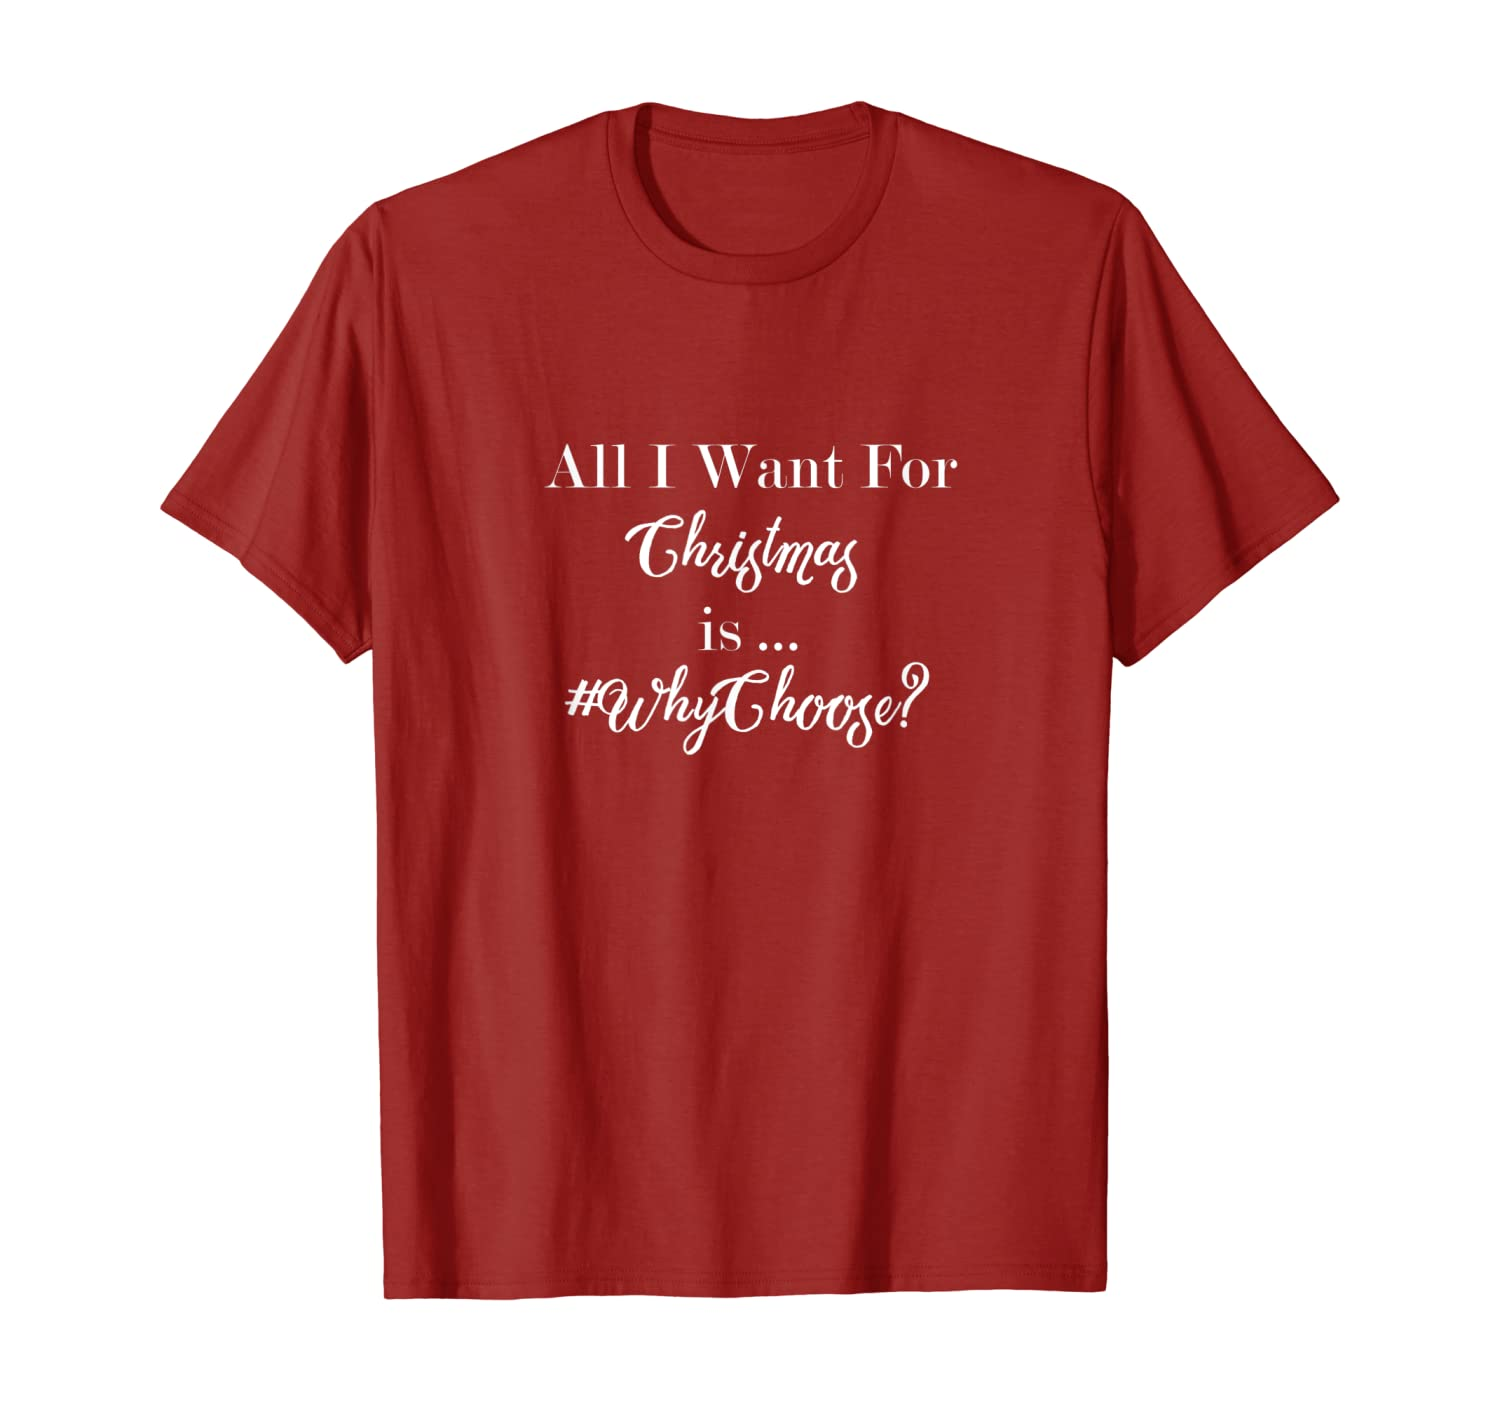 All I Want For Christmas is WhyChoose? T-Shirt